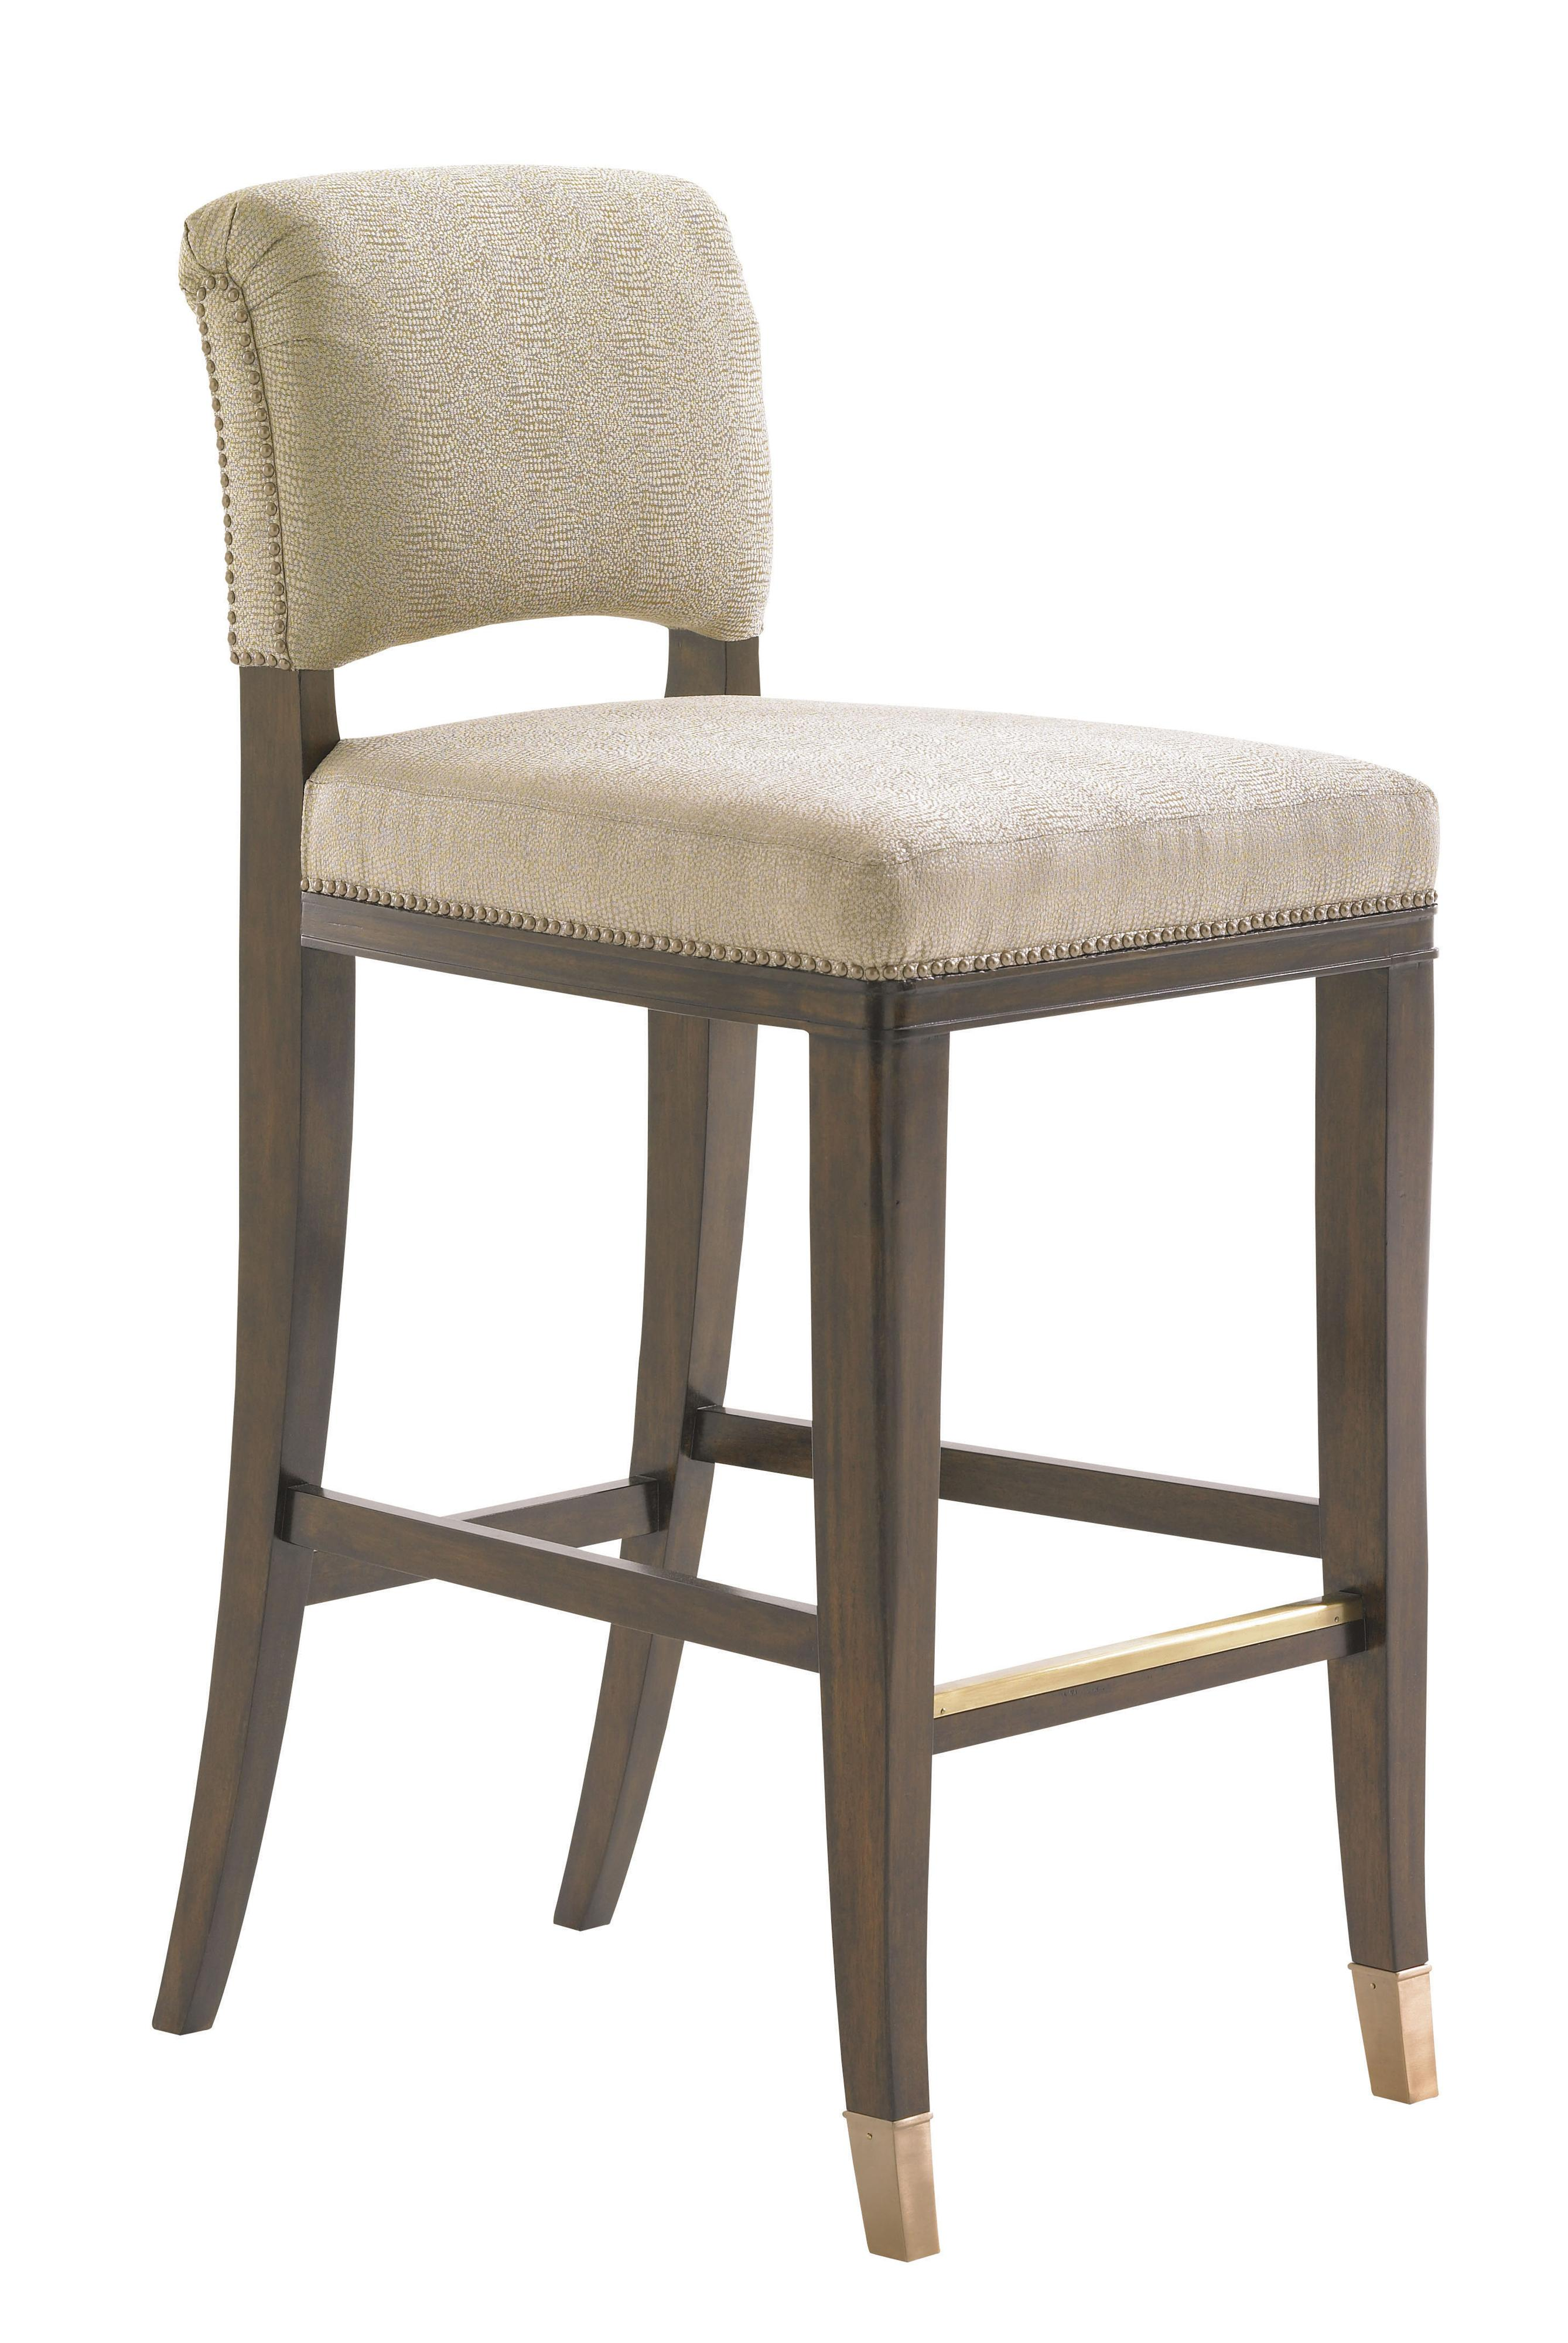 Tower Place LaSalle Quickship Bar Stool by Lexington at Johnny Janosik